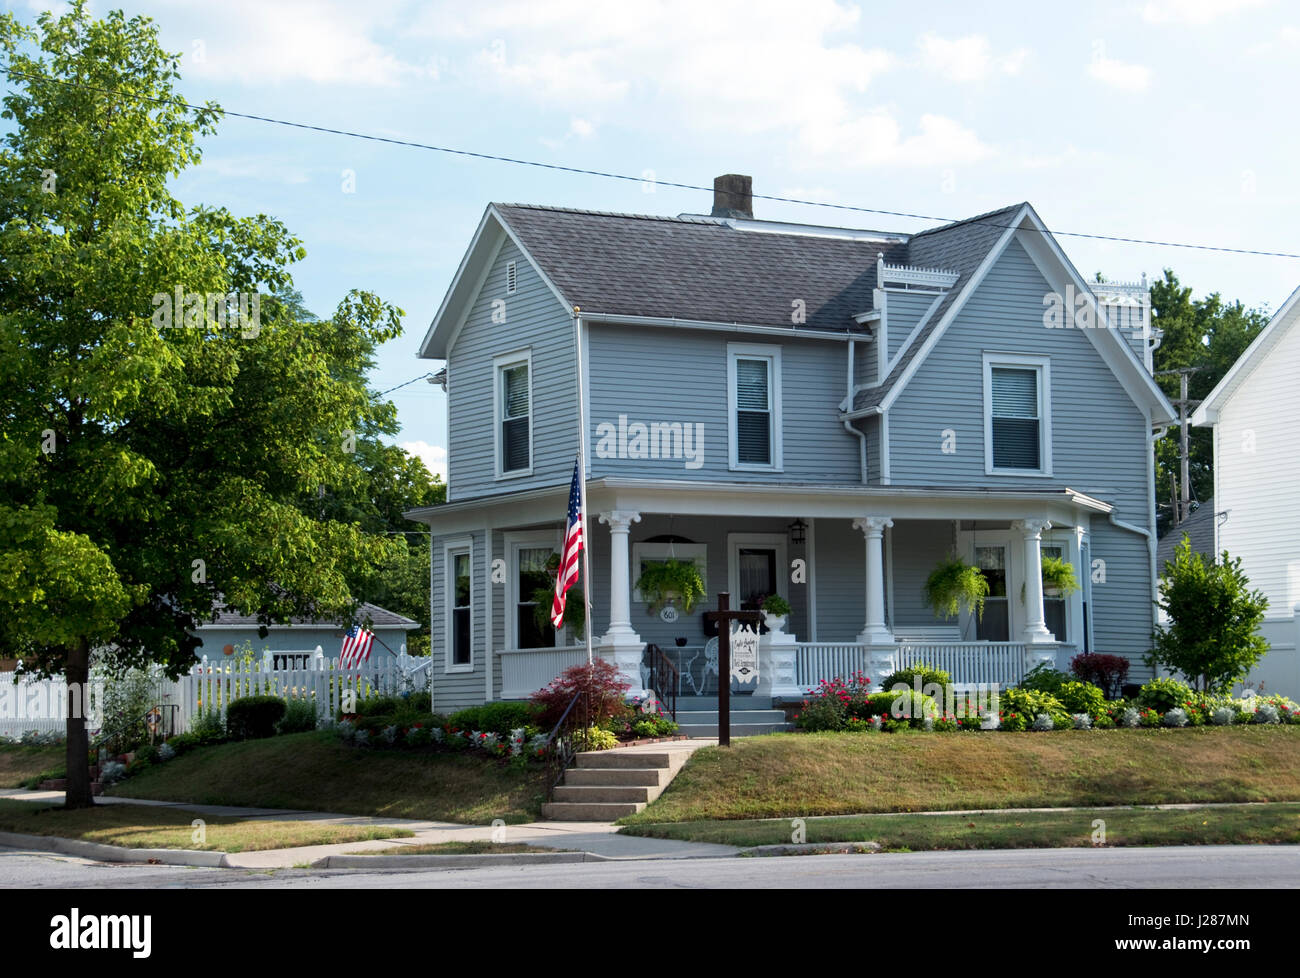 Boyhood home of Apollo 11 astronaut Neil Armstrong, the first man to step on the moon, at Wapakoneta, Ohio. Stock Photo